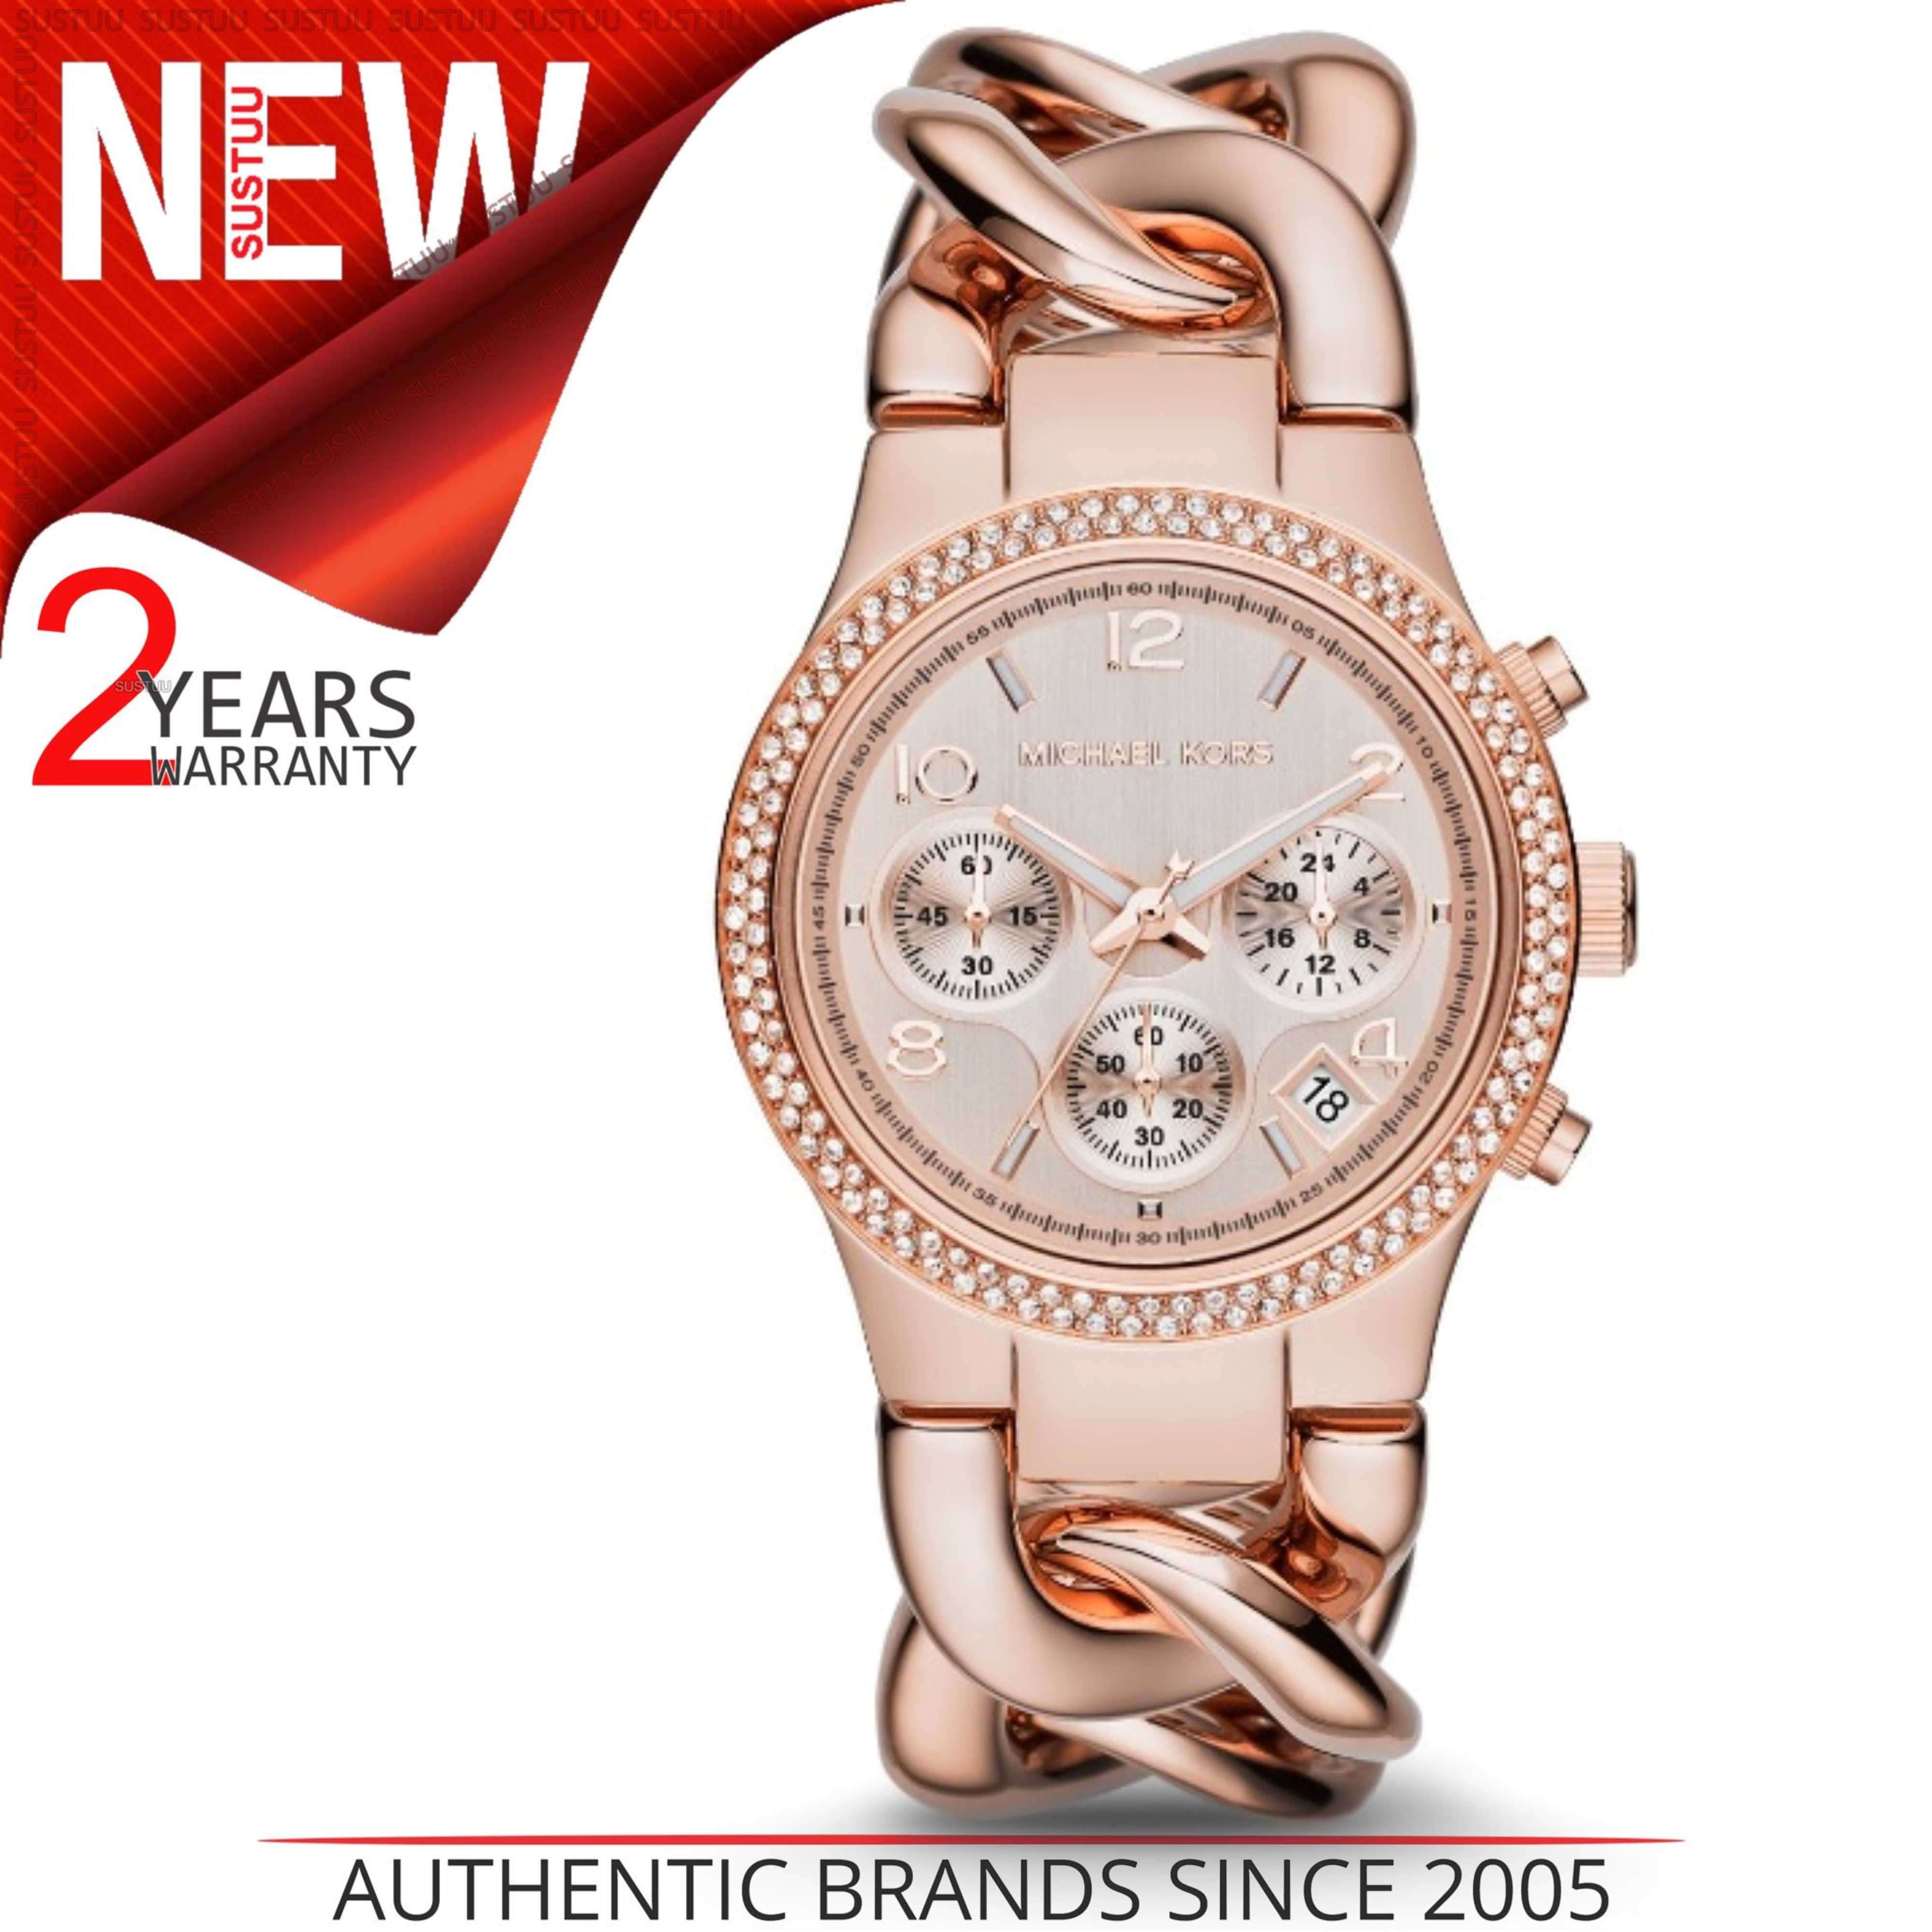 92a6eb15e7c4 Details about Michael Kors Runway Ladies Watch MK3247│Rose Gold Dial│Ion  Plated Twist Bracelet